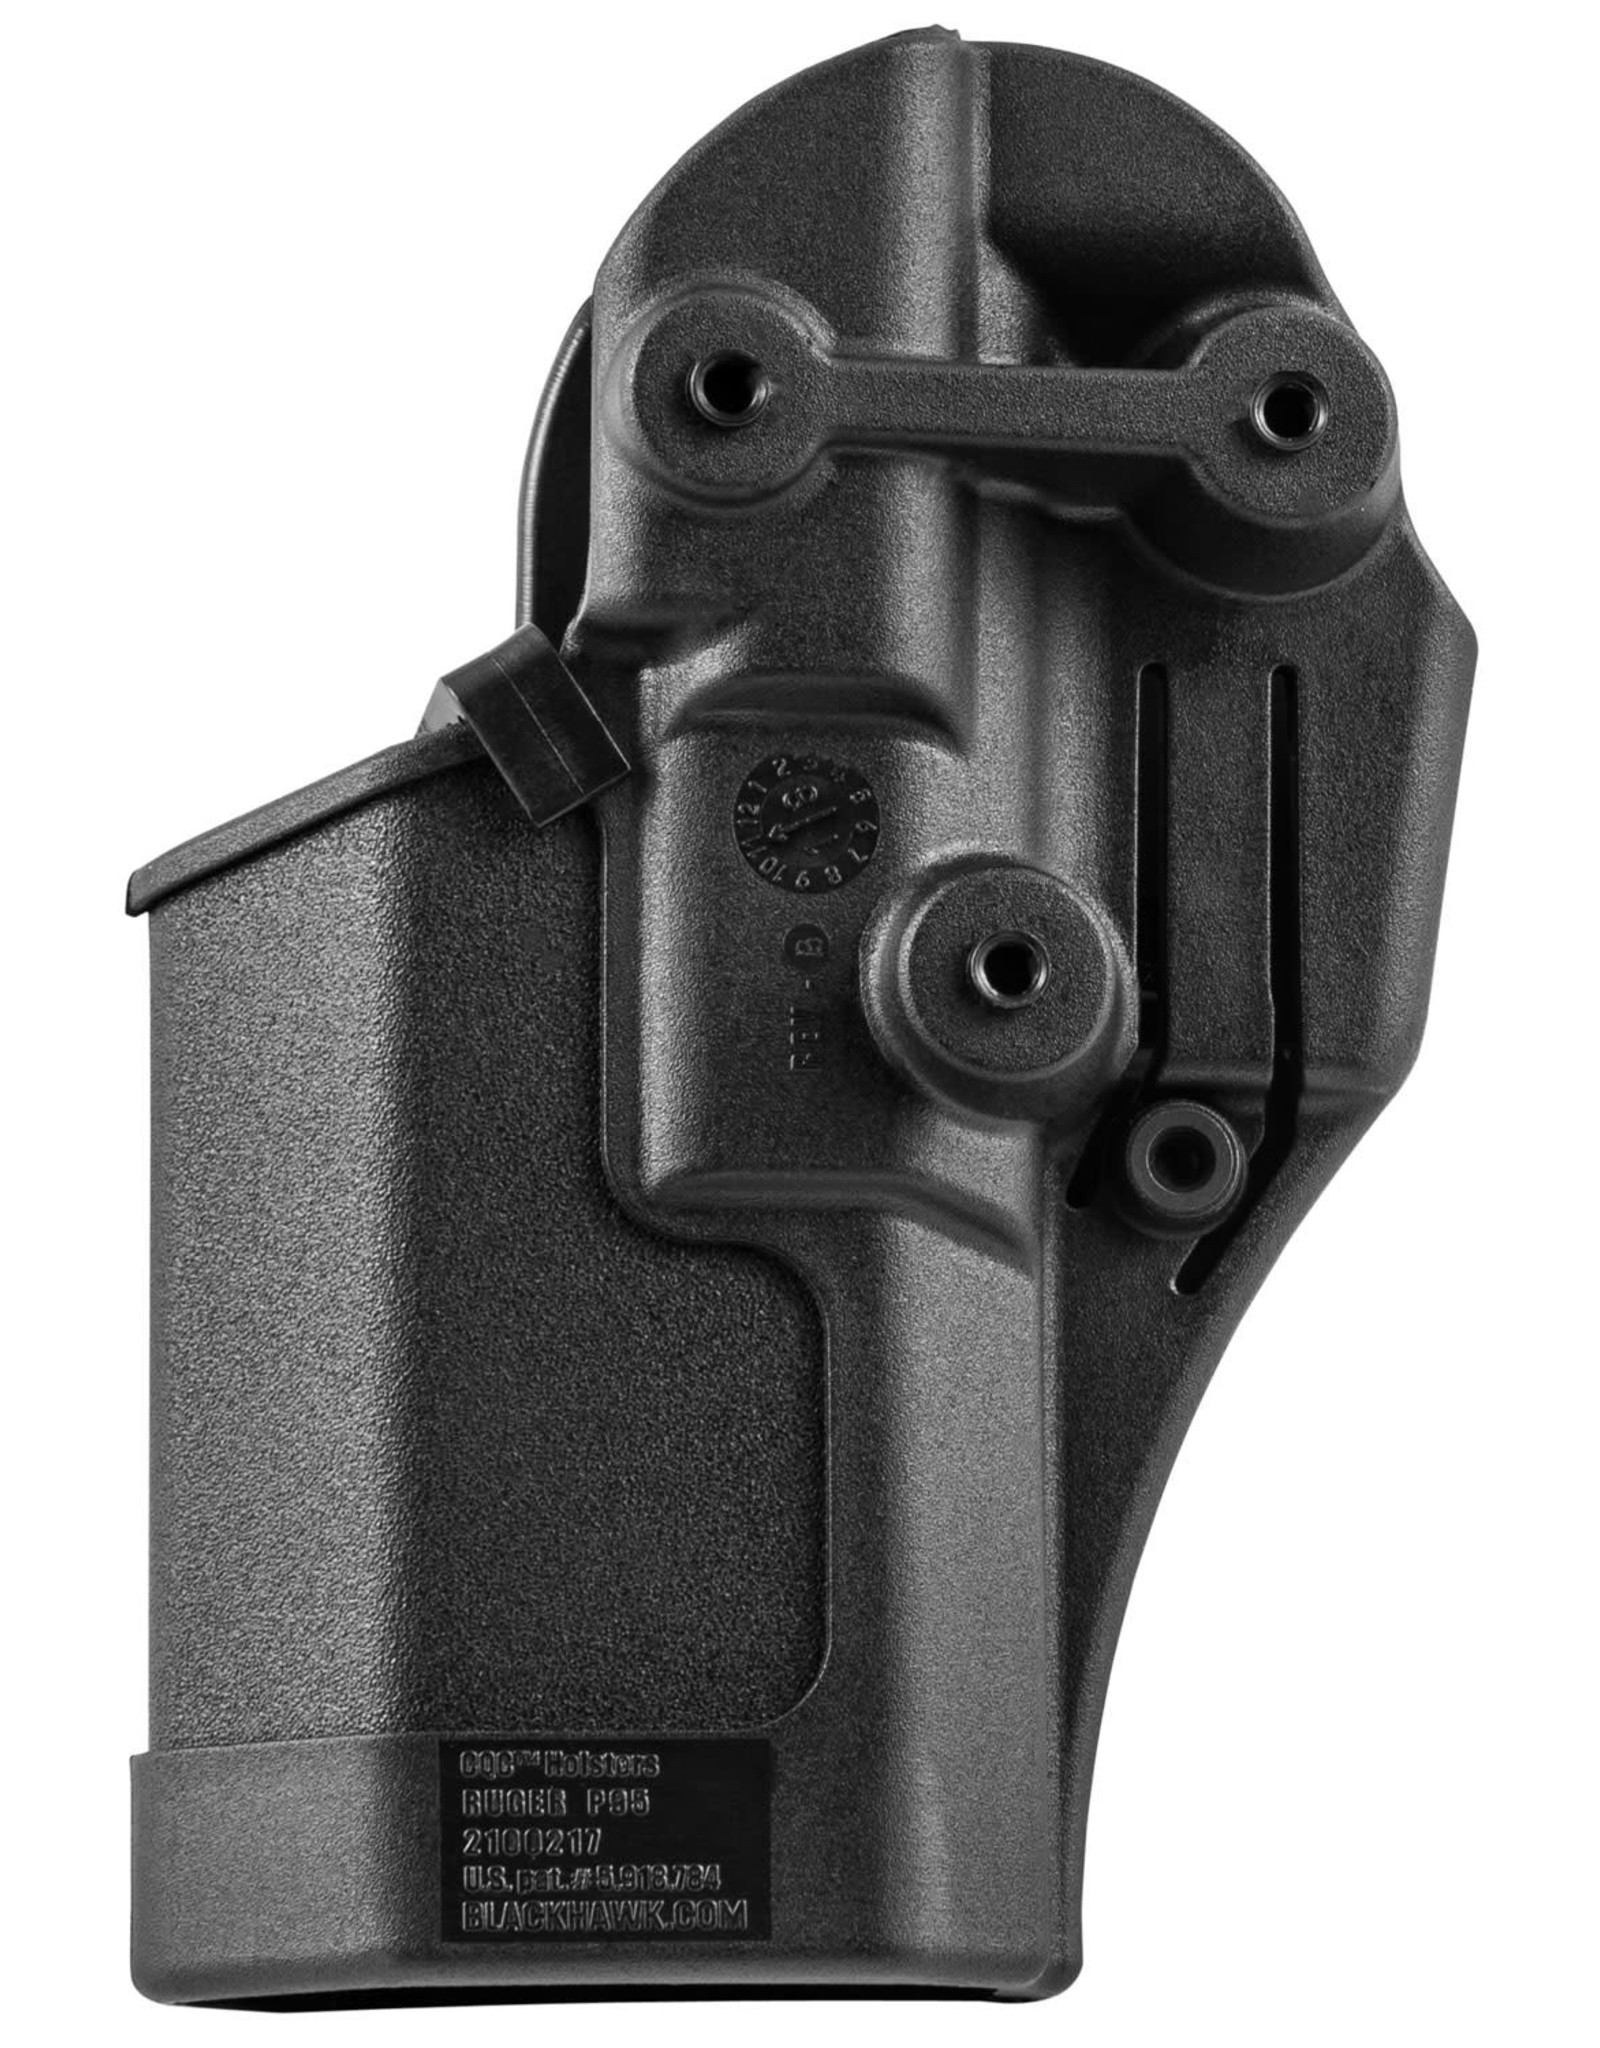 Blackhawk Blackhawk Holster for Glock 17/22/31 - RH